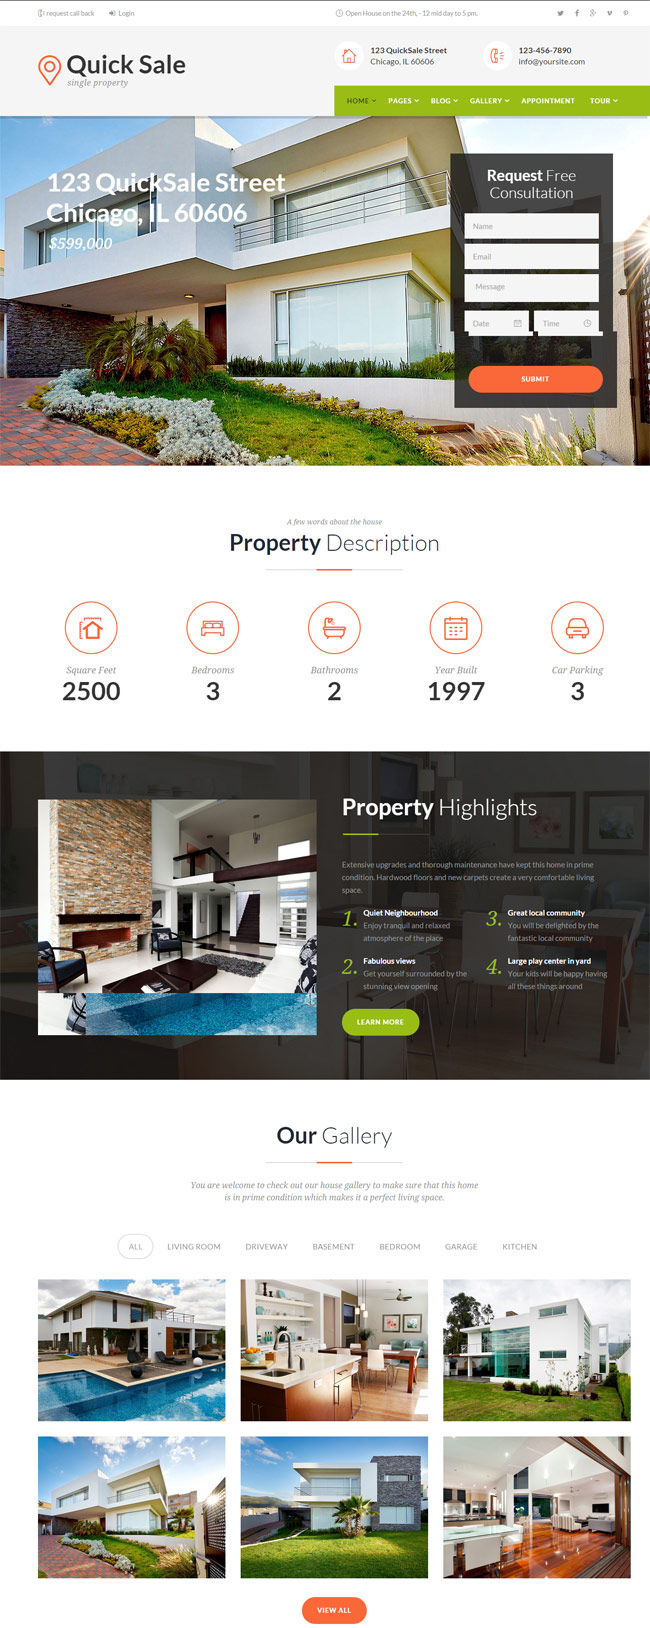 Quick-Sale---Single-Property-Real-Estate-Wordpress-Theme